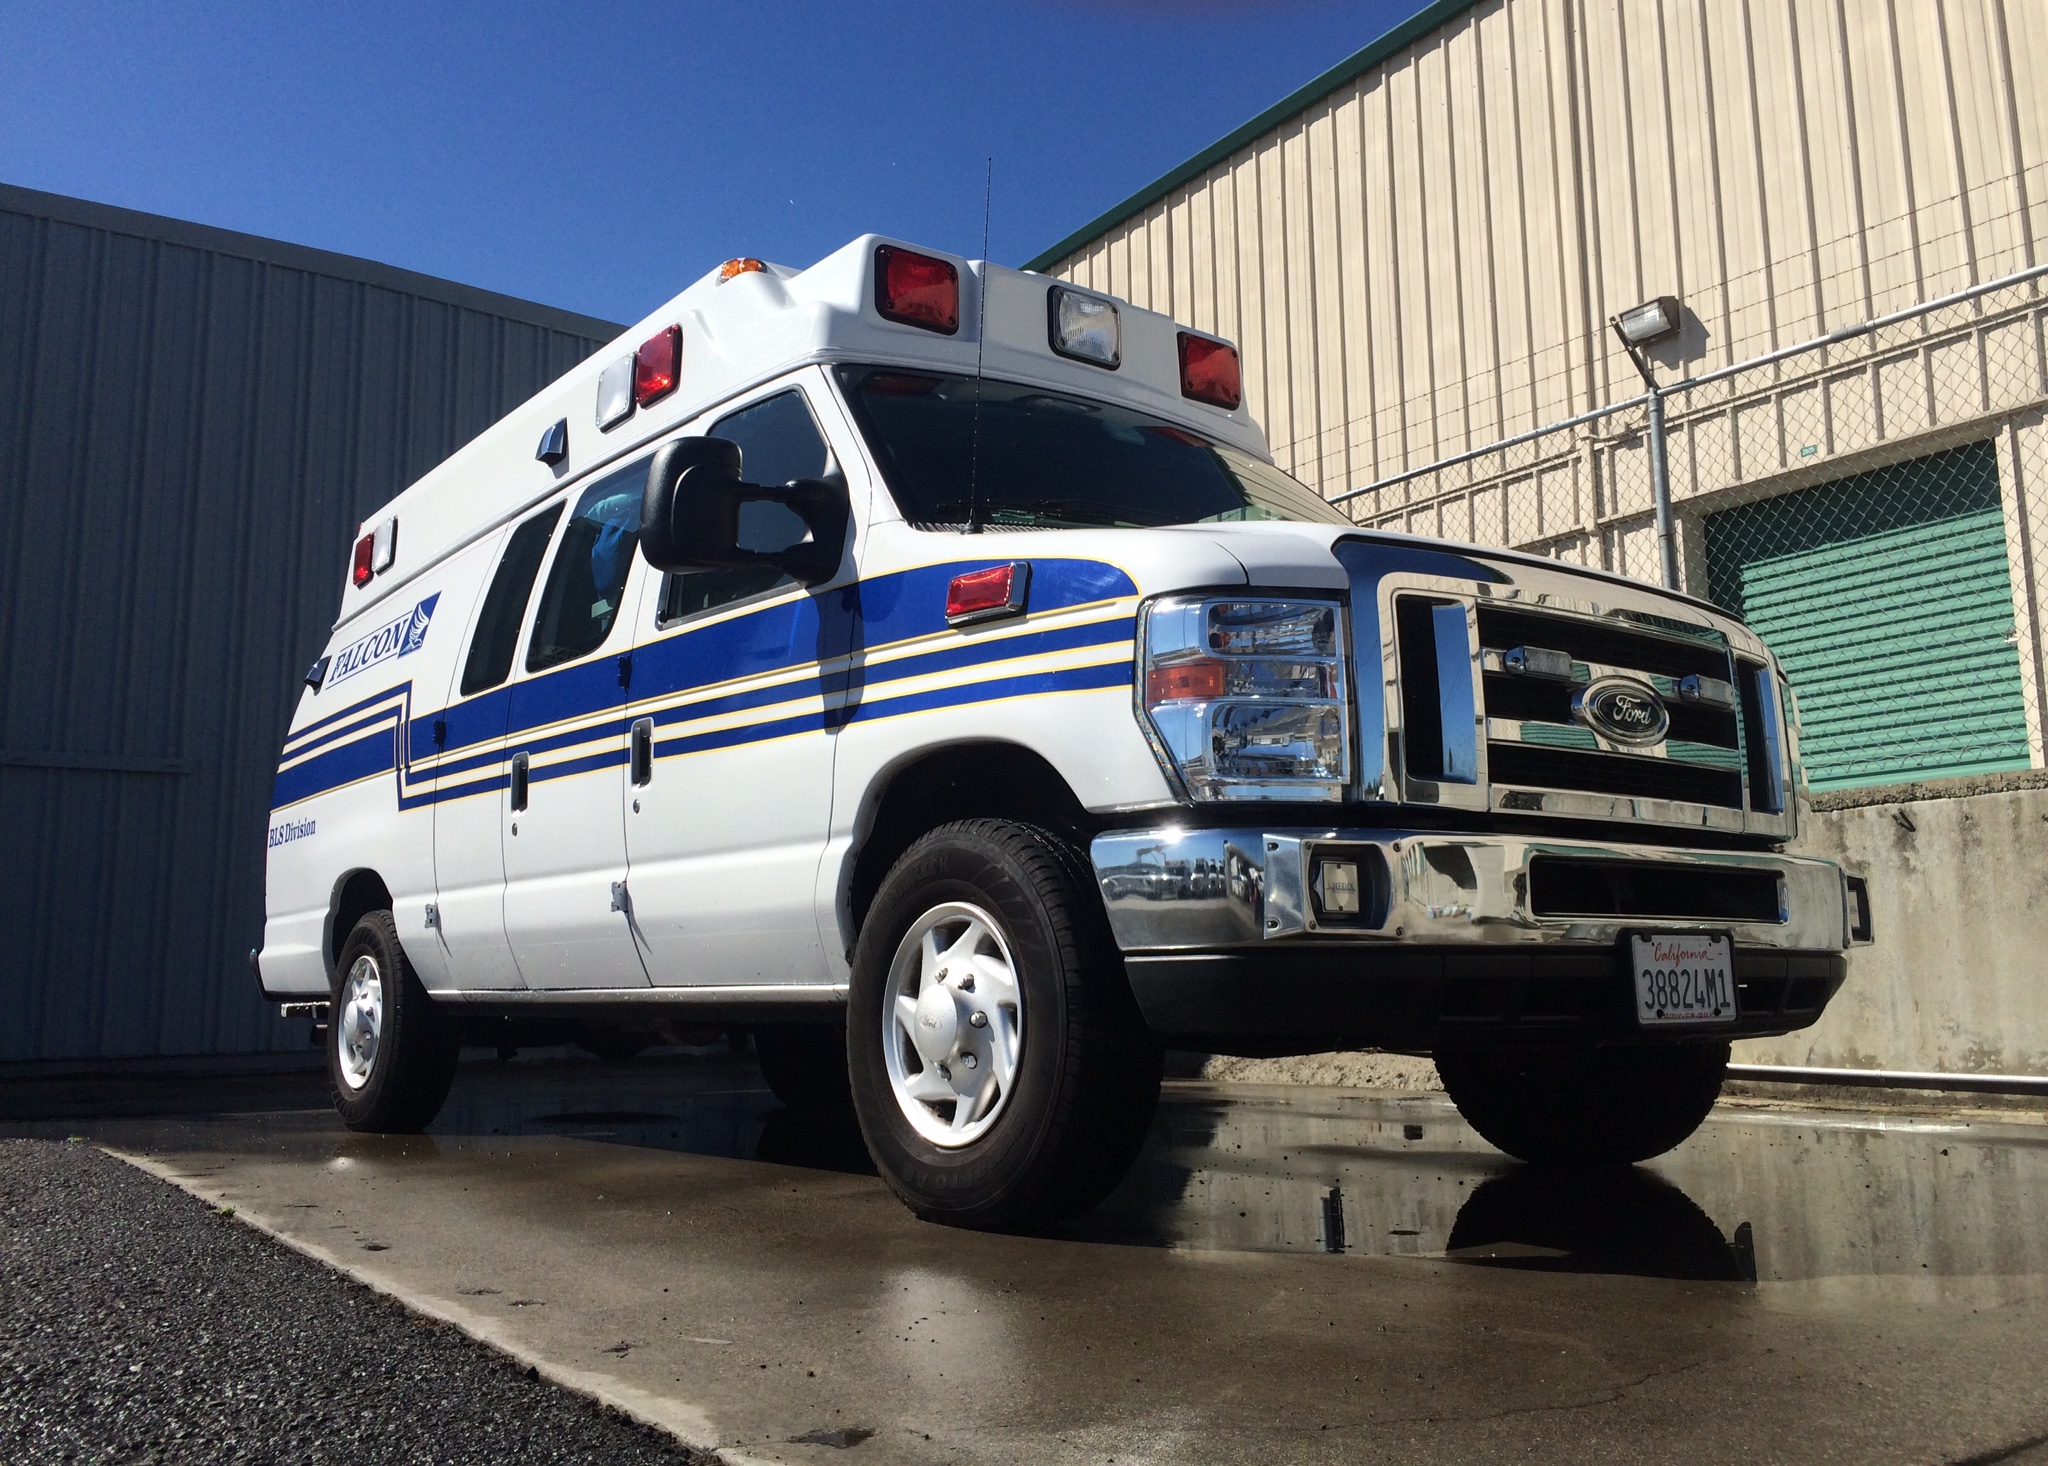 Falcon Ambulance in El Sobrante Ca.just added 5 brand new ambulances to their fleet.  We are always excited to hear the success and growth of our customers. If you are expanding…